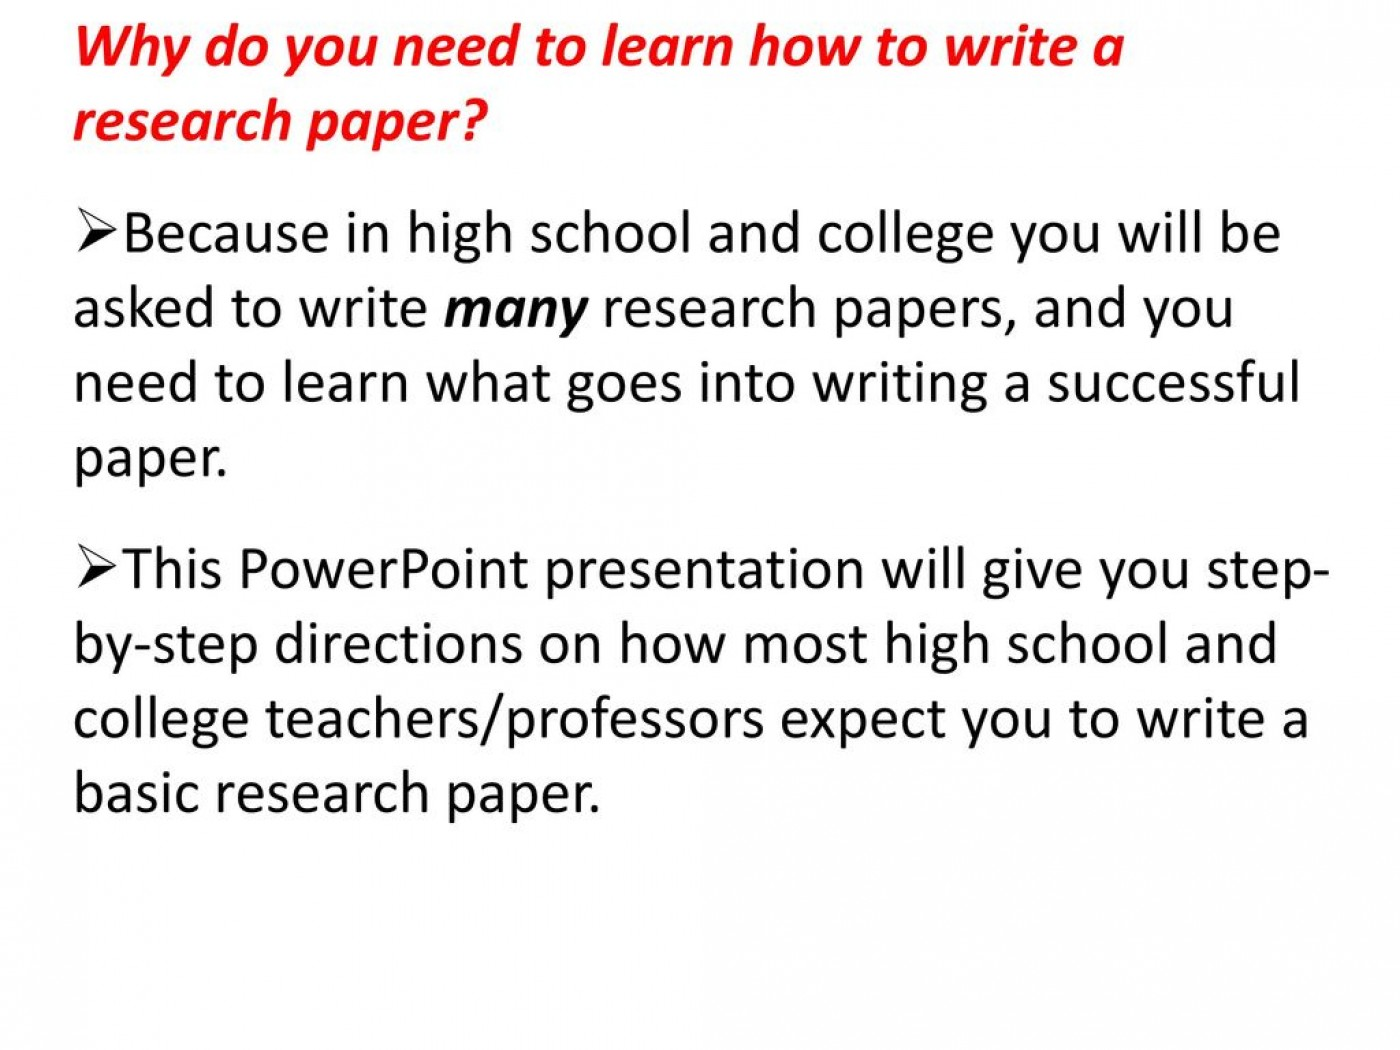 013 Whydoyouneedtolearnhowtowritearesearchpaper Research Paper How To Write Powerpoint Awesome A Presentation 1400